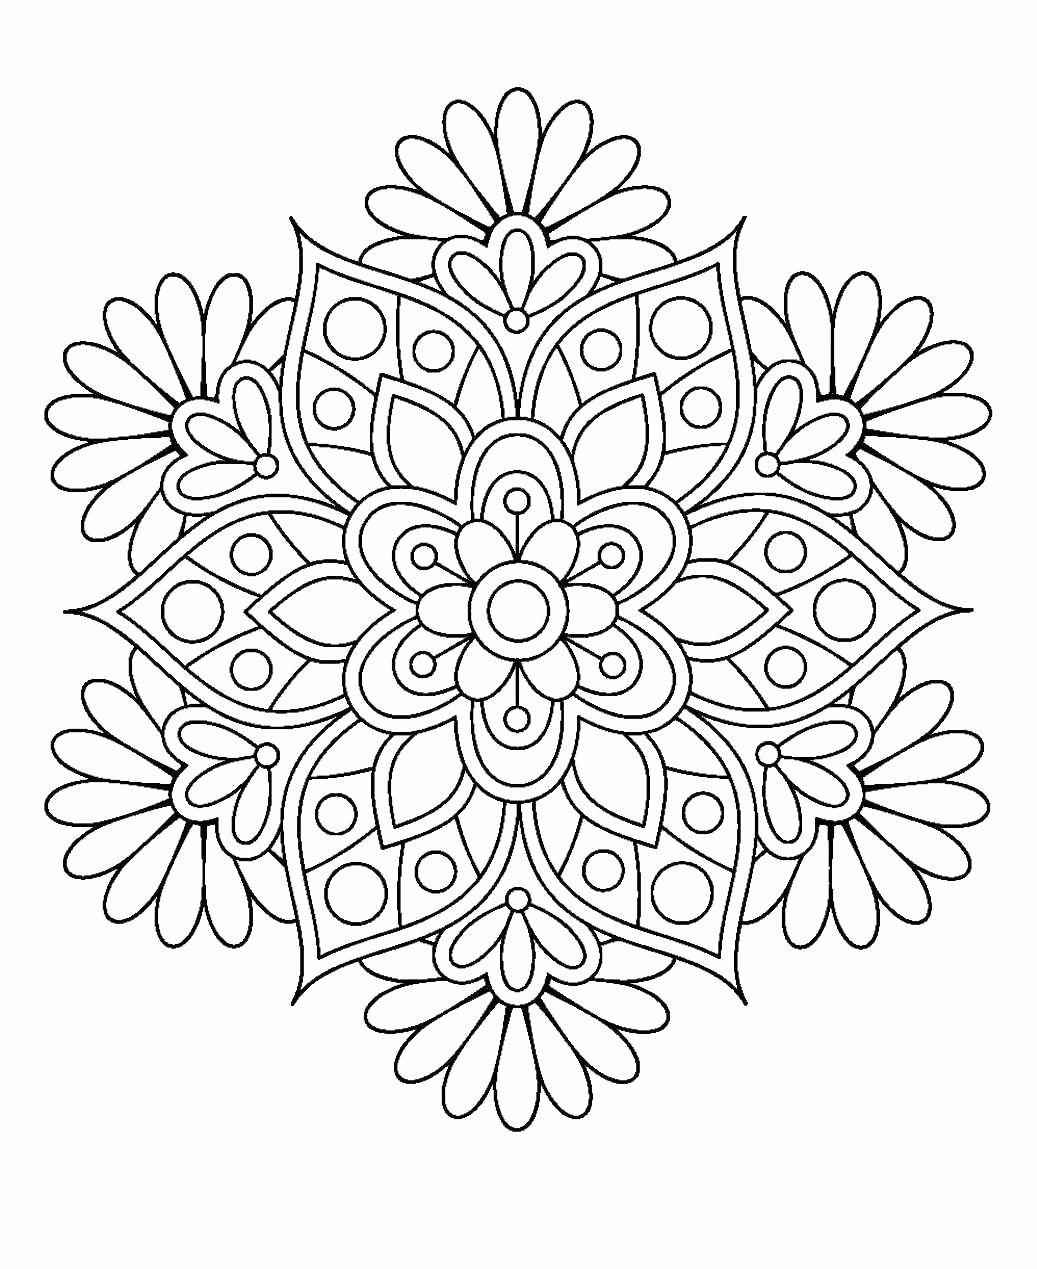 Pin By Solange Sardon On Coloring Pages Mandala Coloring Pages Mandala Coloring Mandala Design Pattern